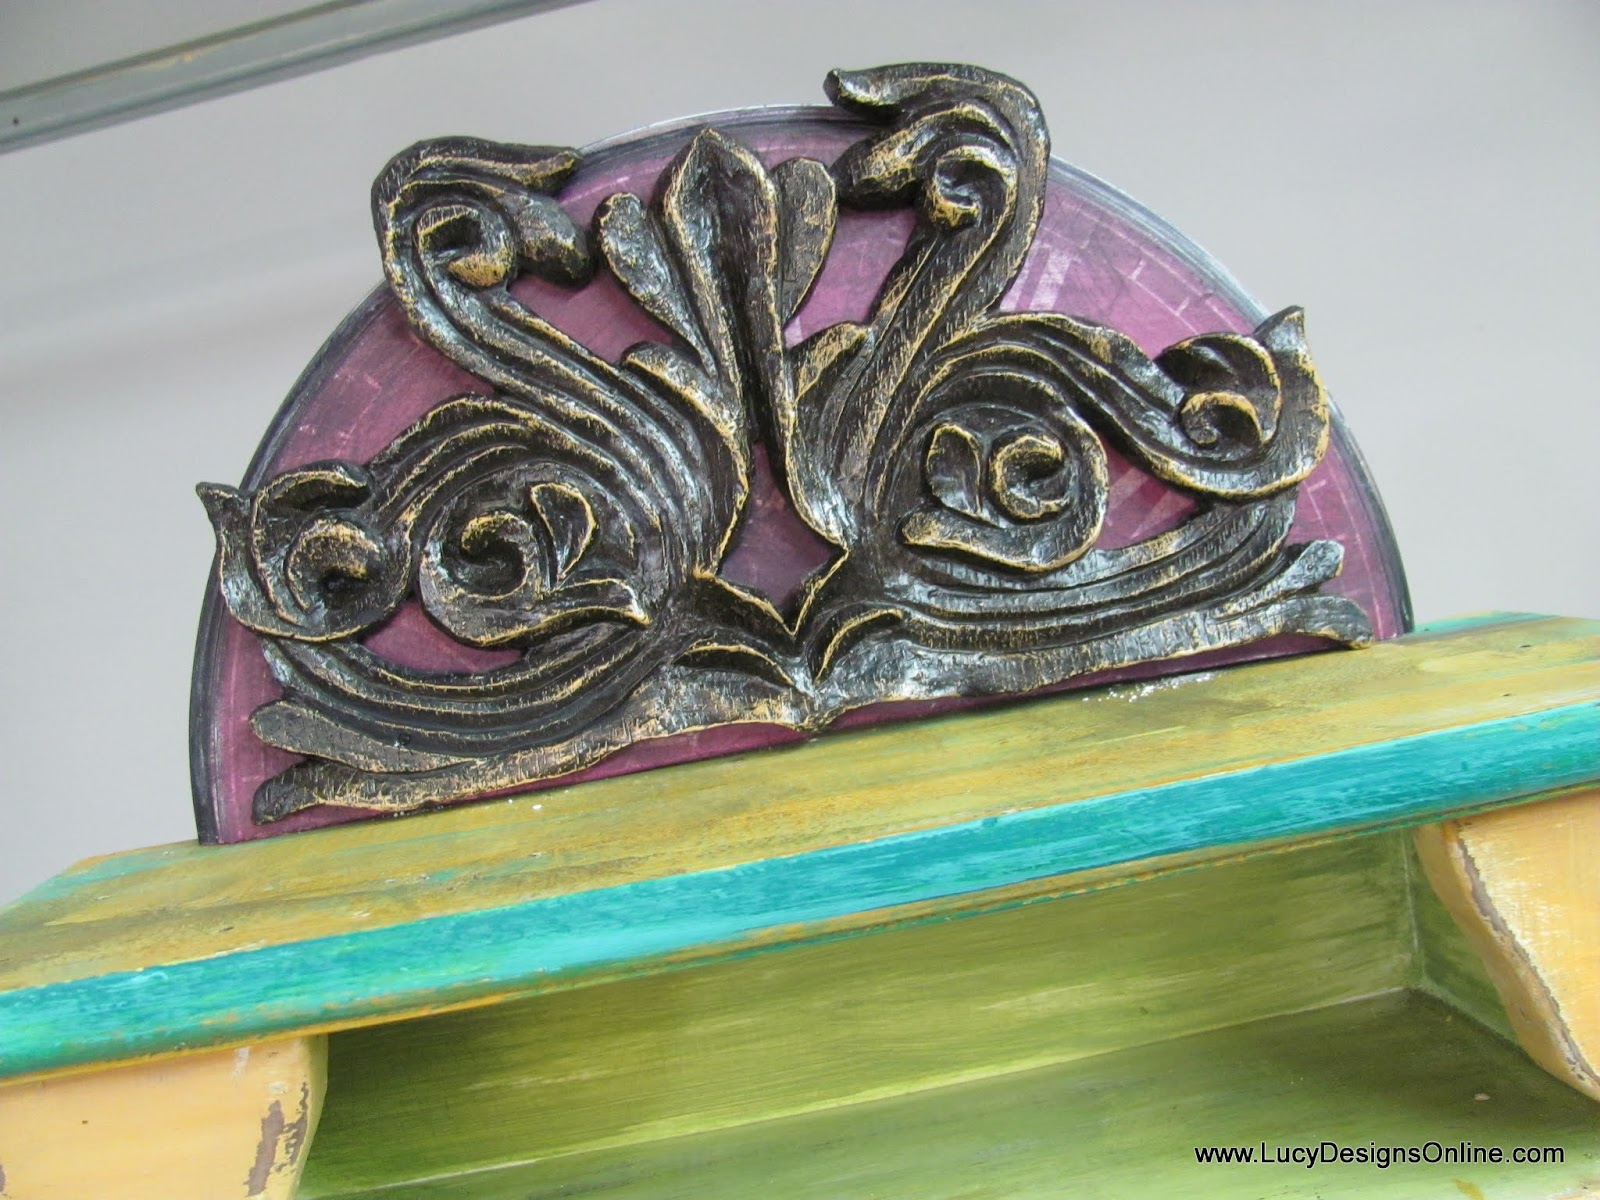 funky pediment on cabinet using repurposed and recycled elements